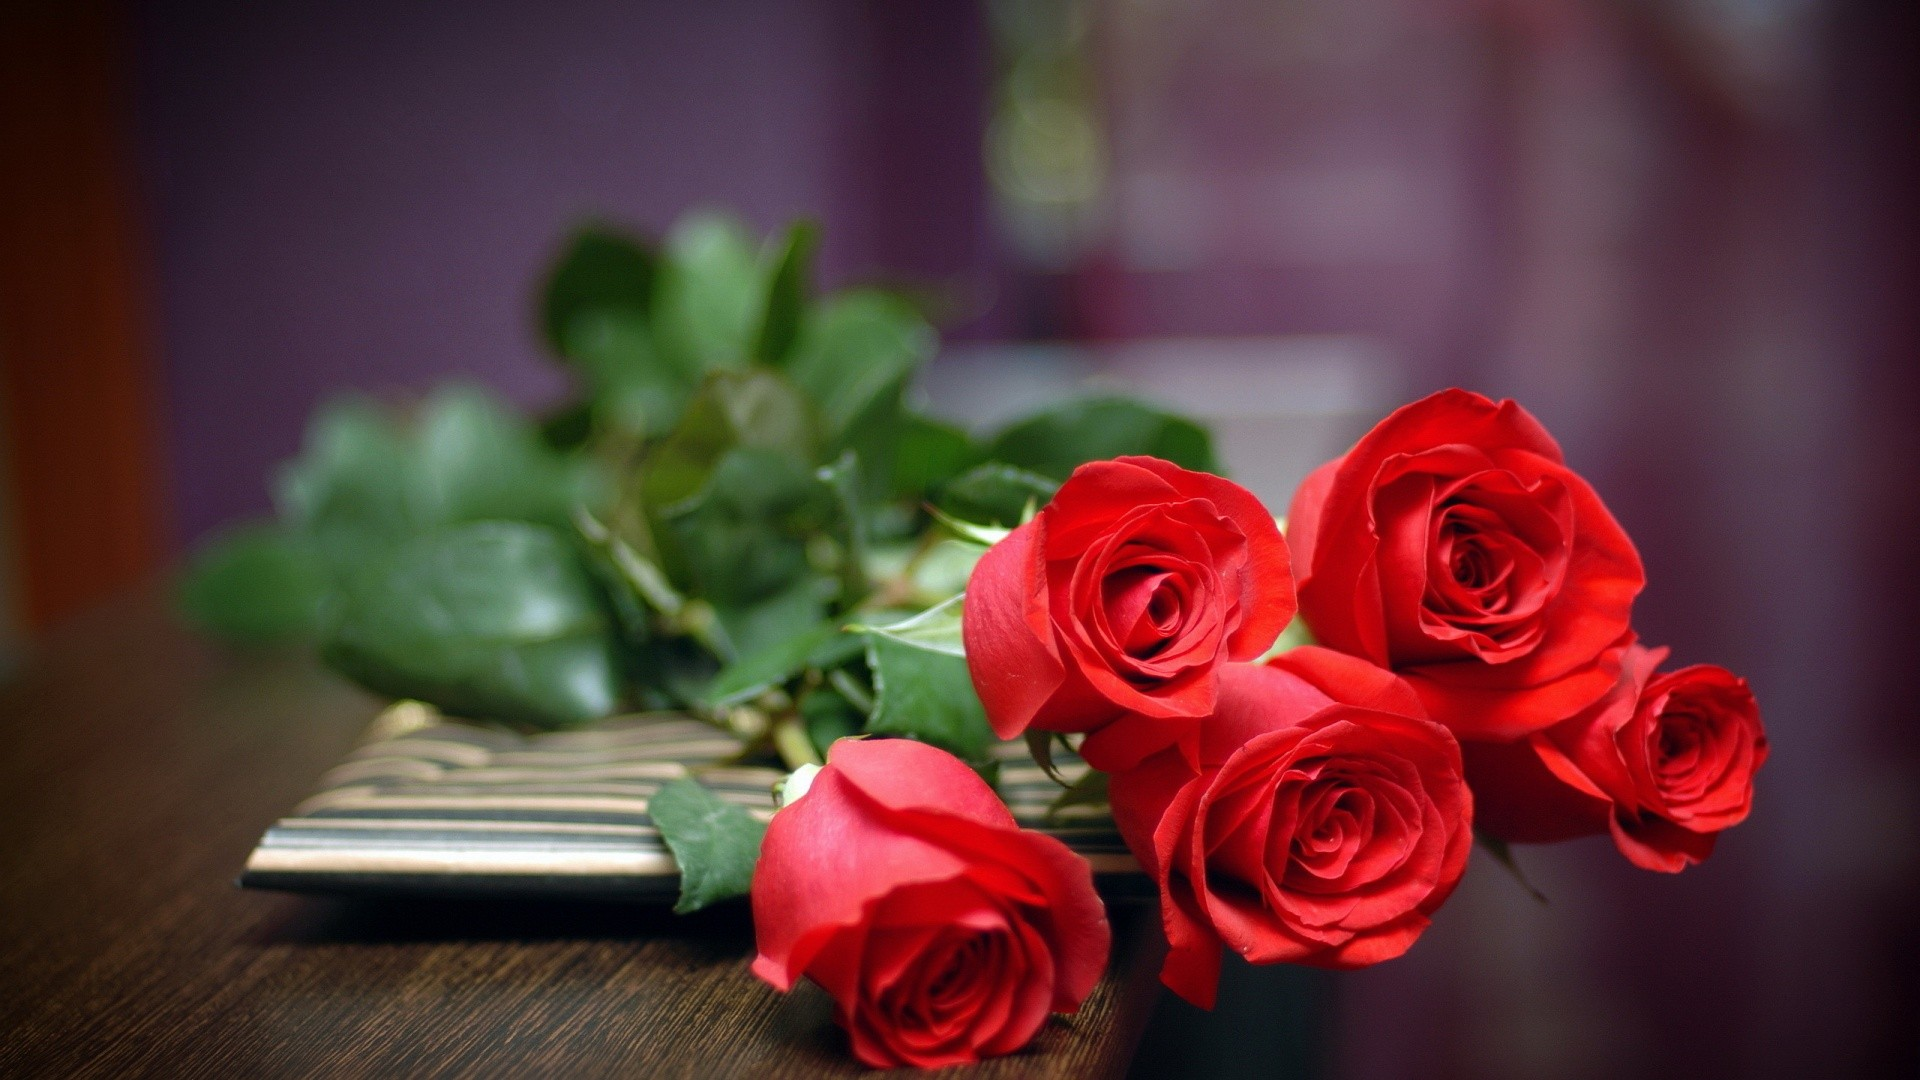 red roses on table hd wallpaper | hd latest wallpapers